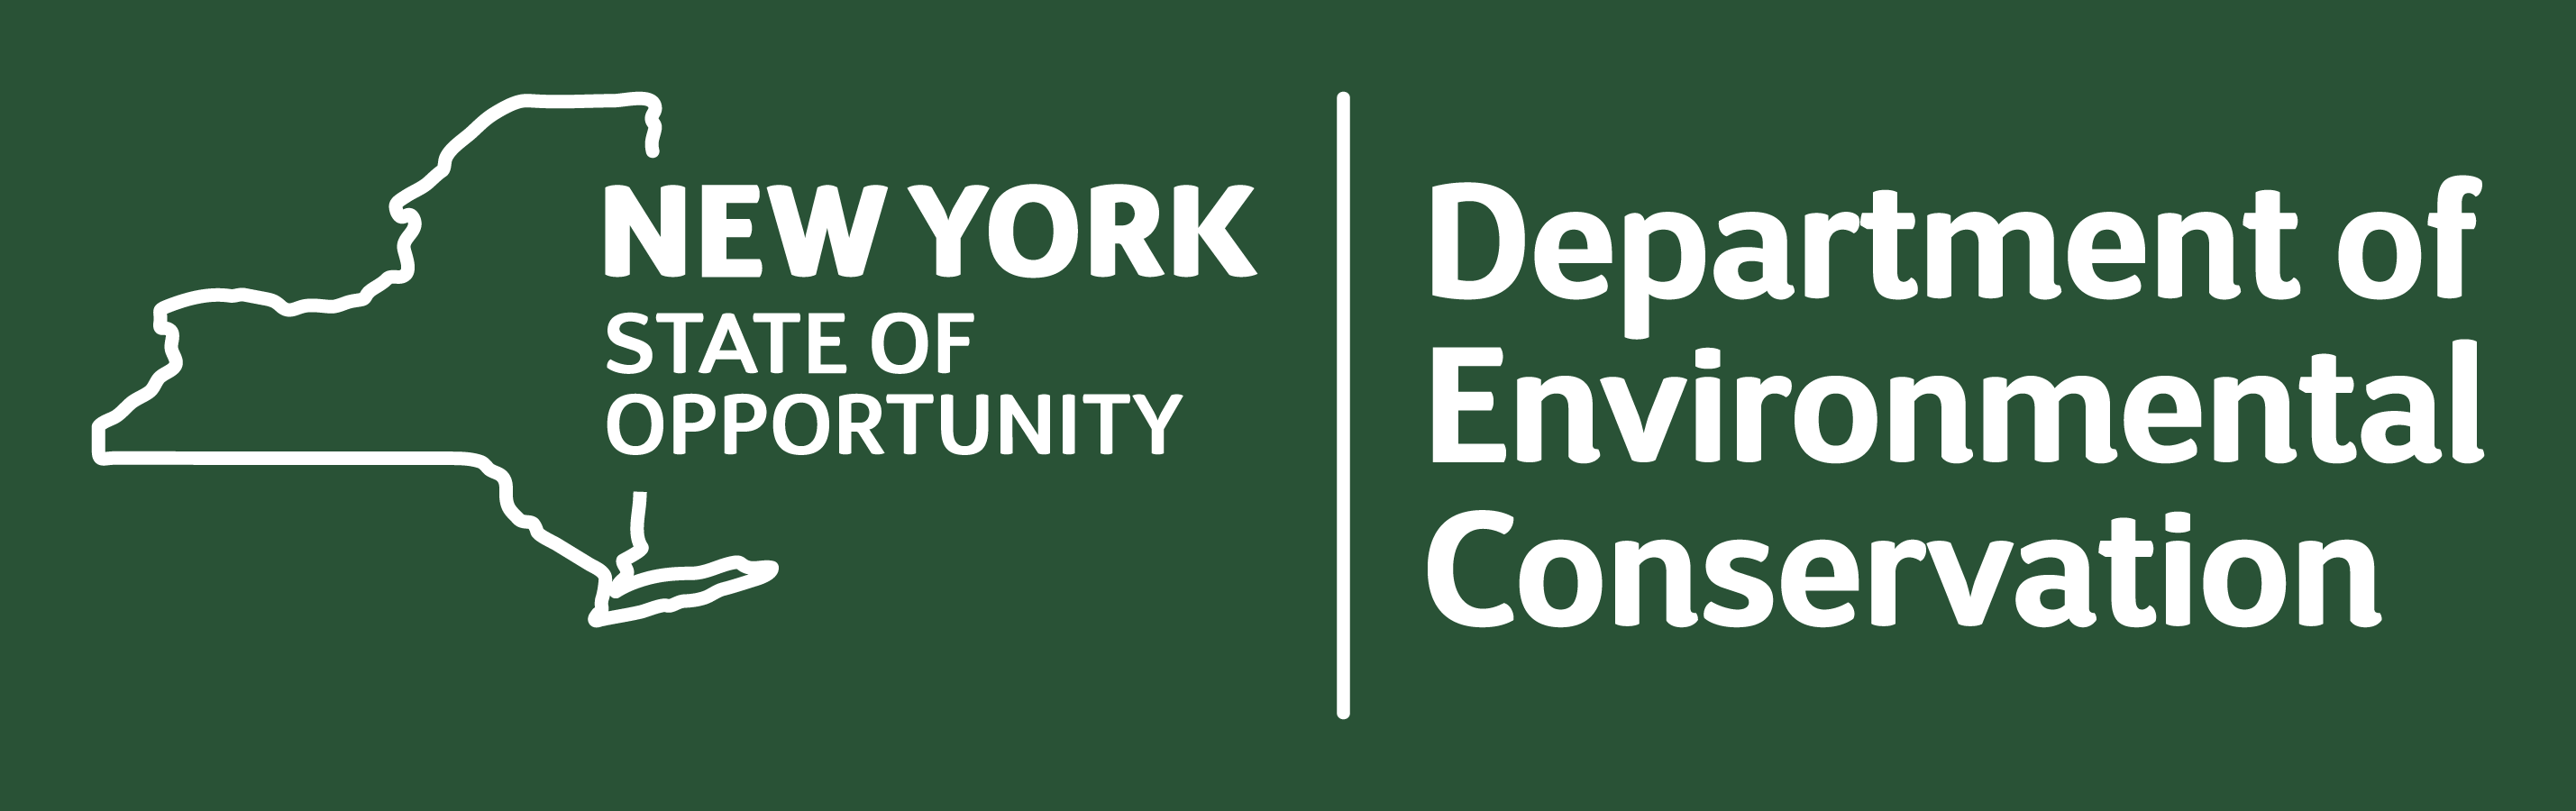 Predictive Enforcement of Pollution and Hazardous Waste Violations in New York State